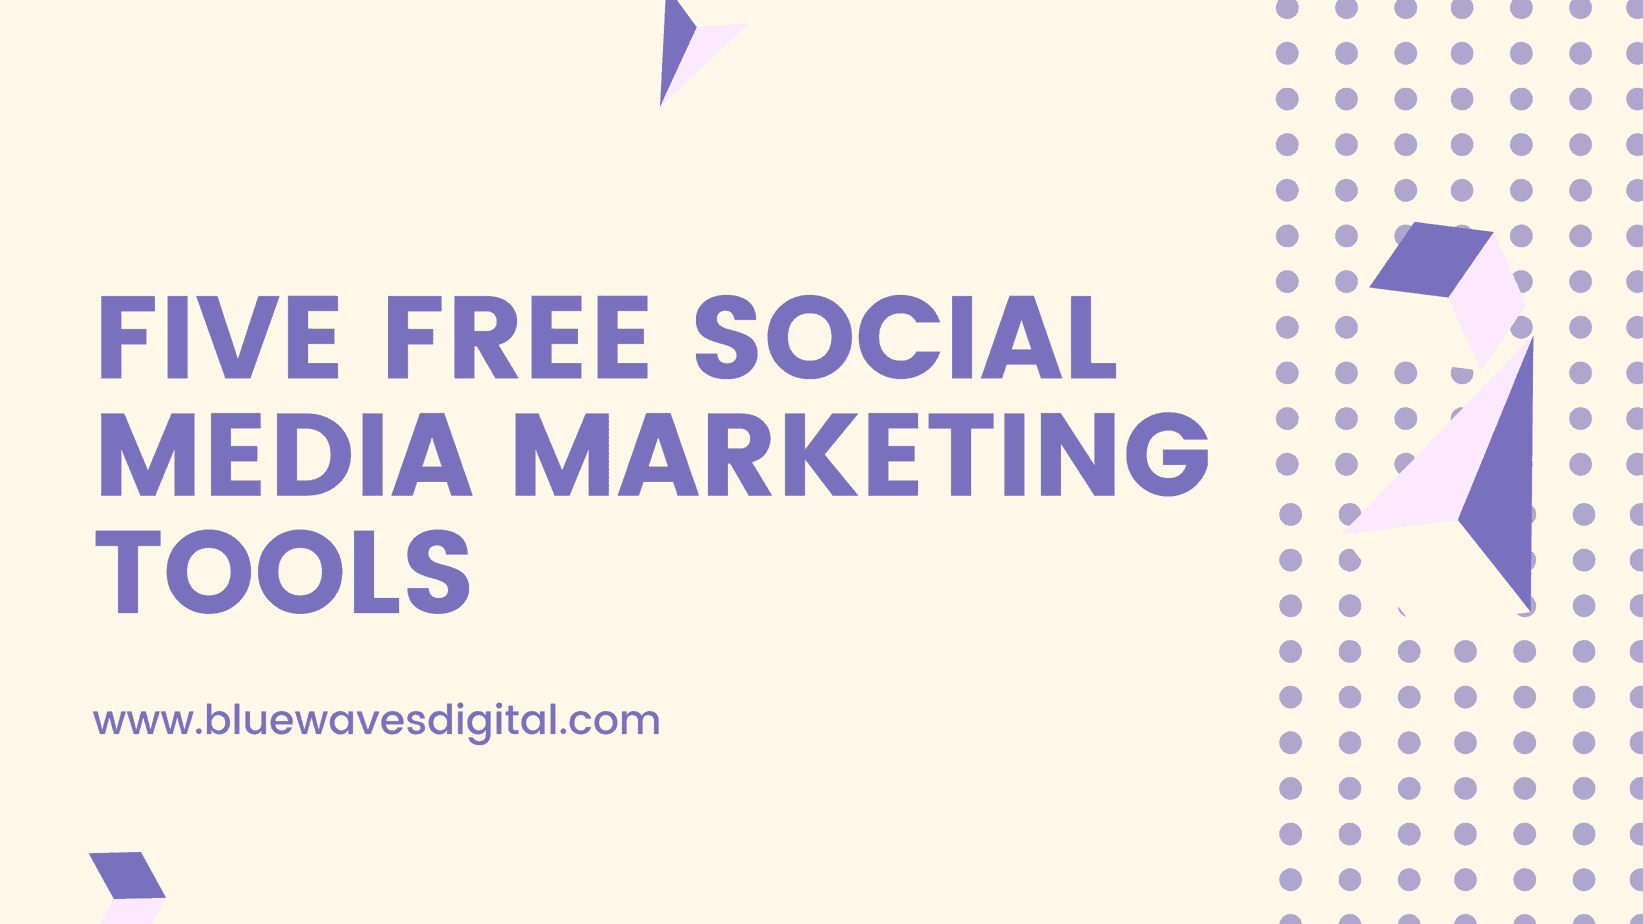 Five Free Social Media Marketing Tools - Grow Your Business in 2021